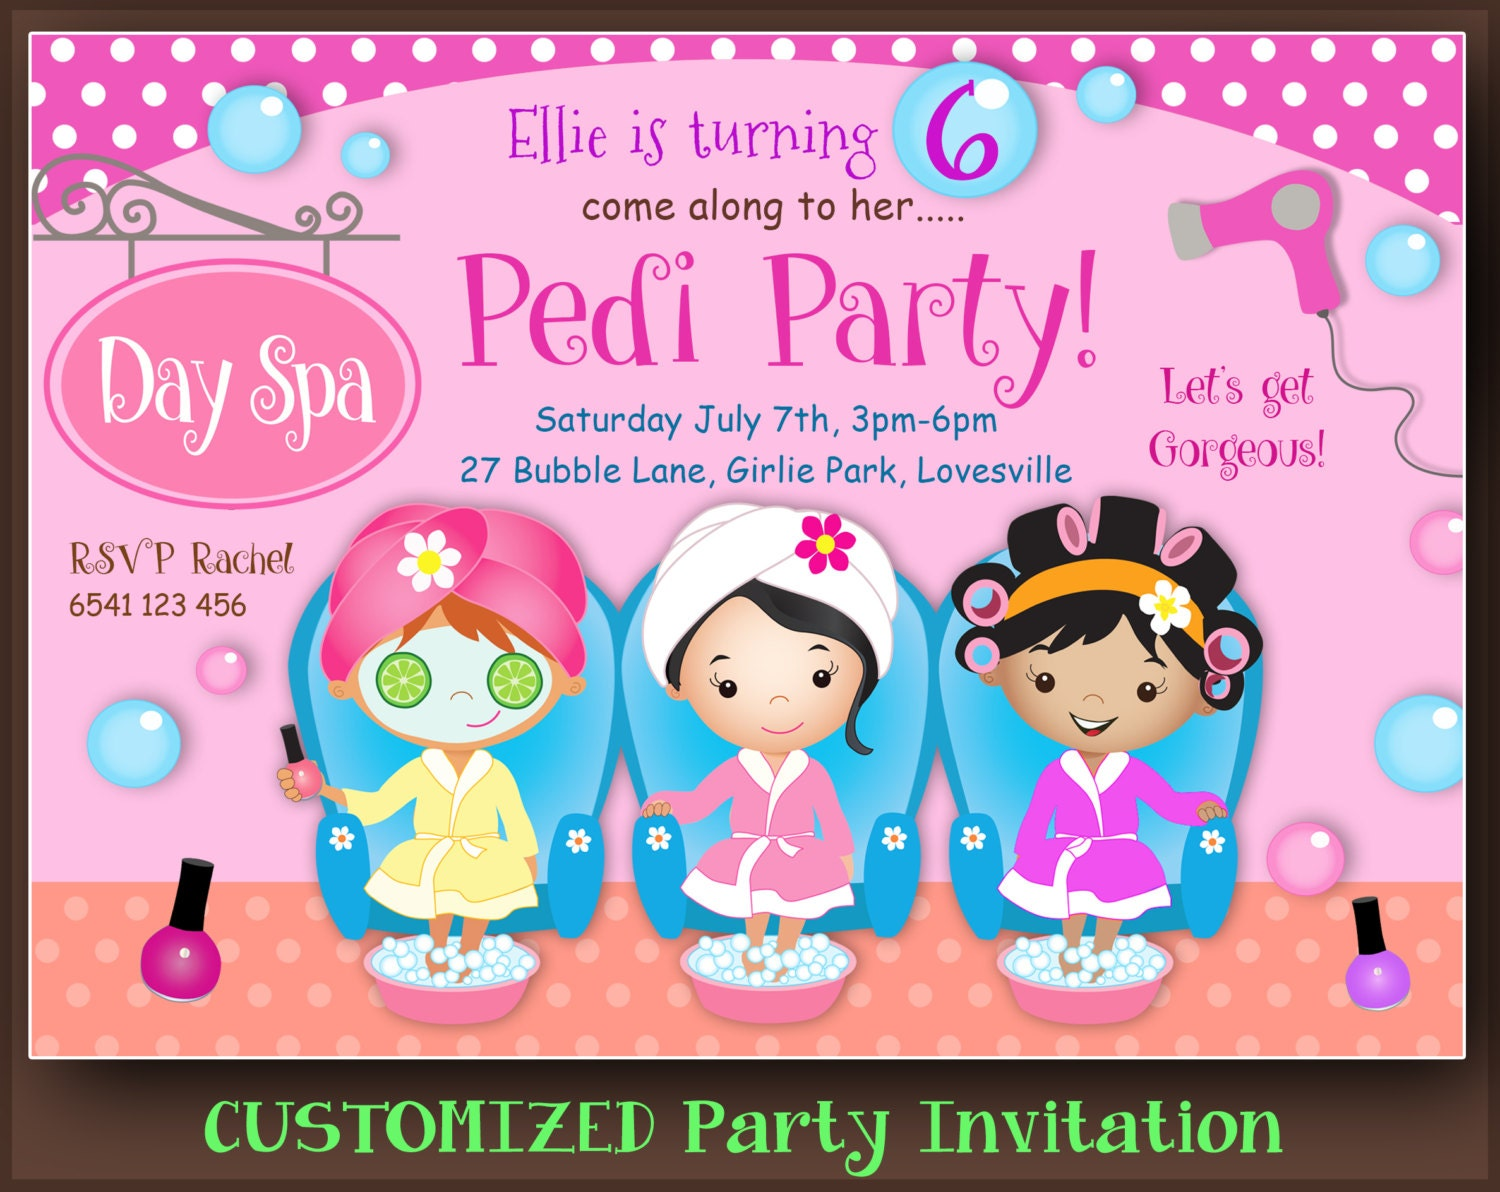 CUSTOMIZED Spa Party Invitation Pamper Party Pedicure Party